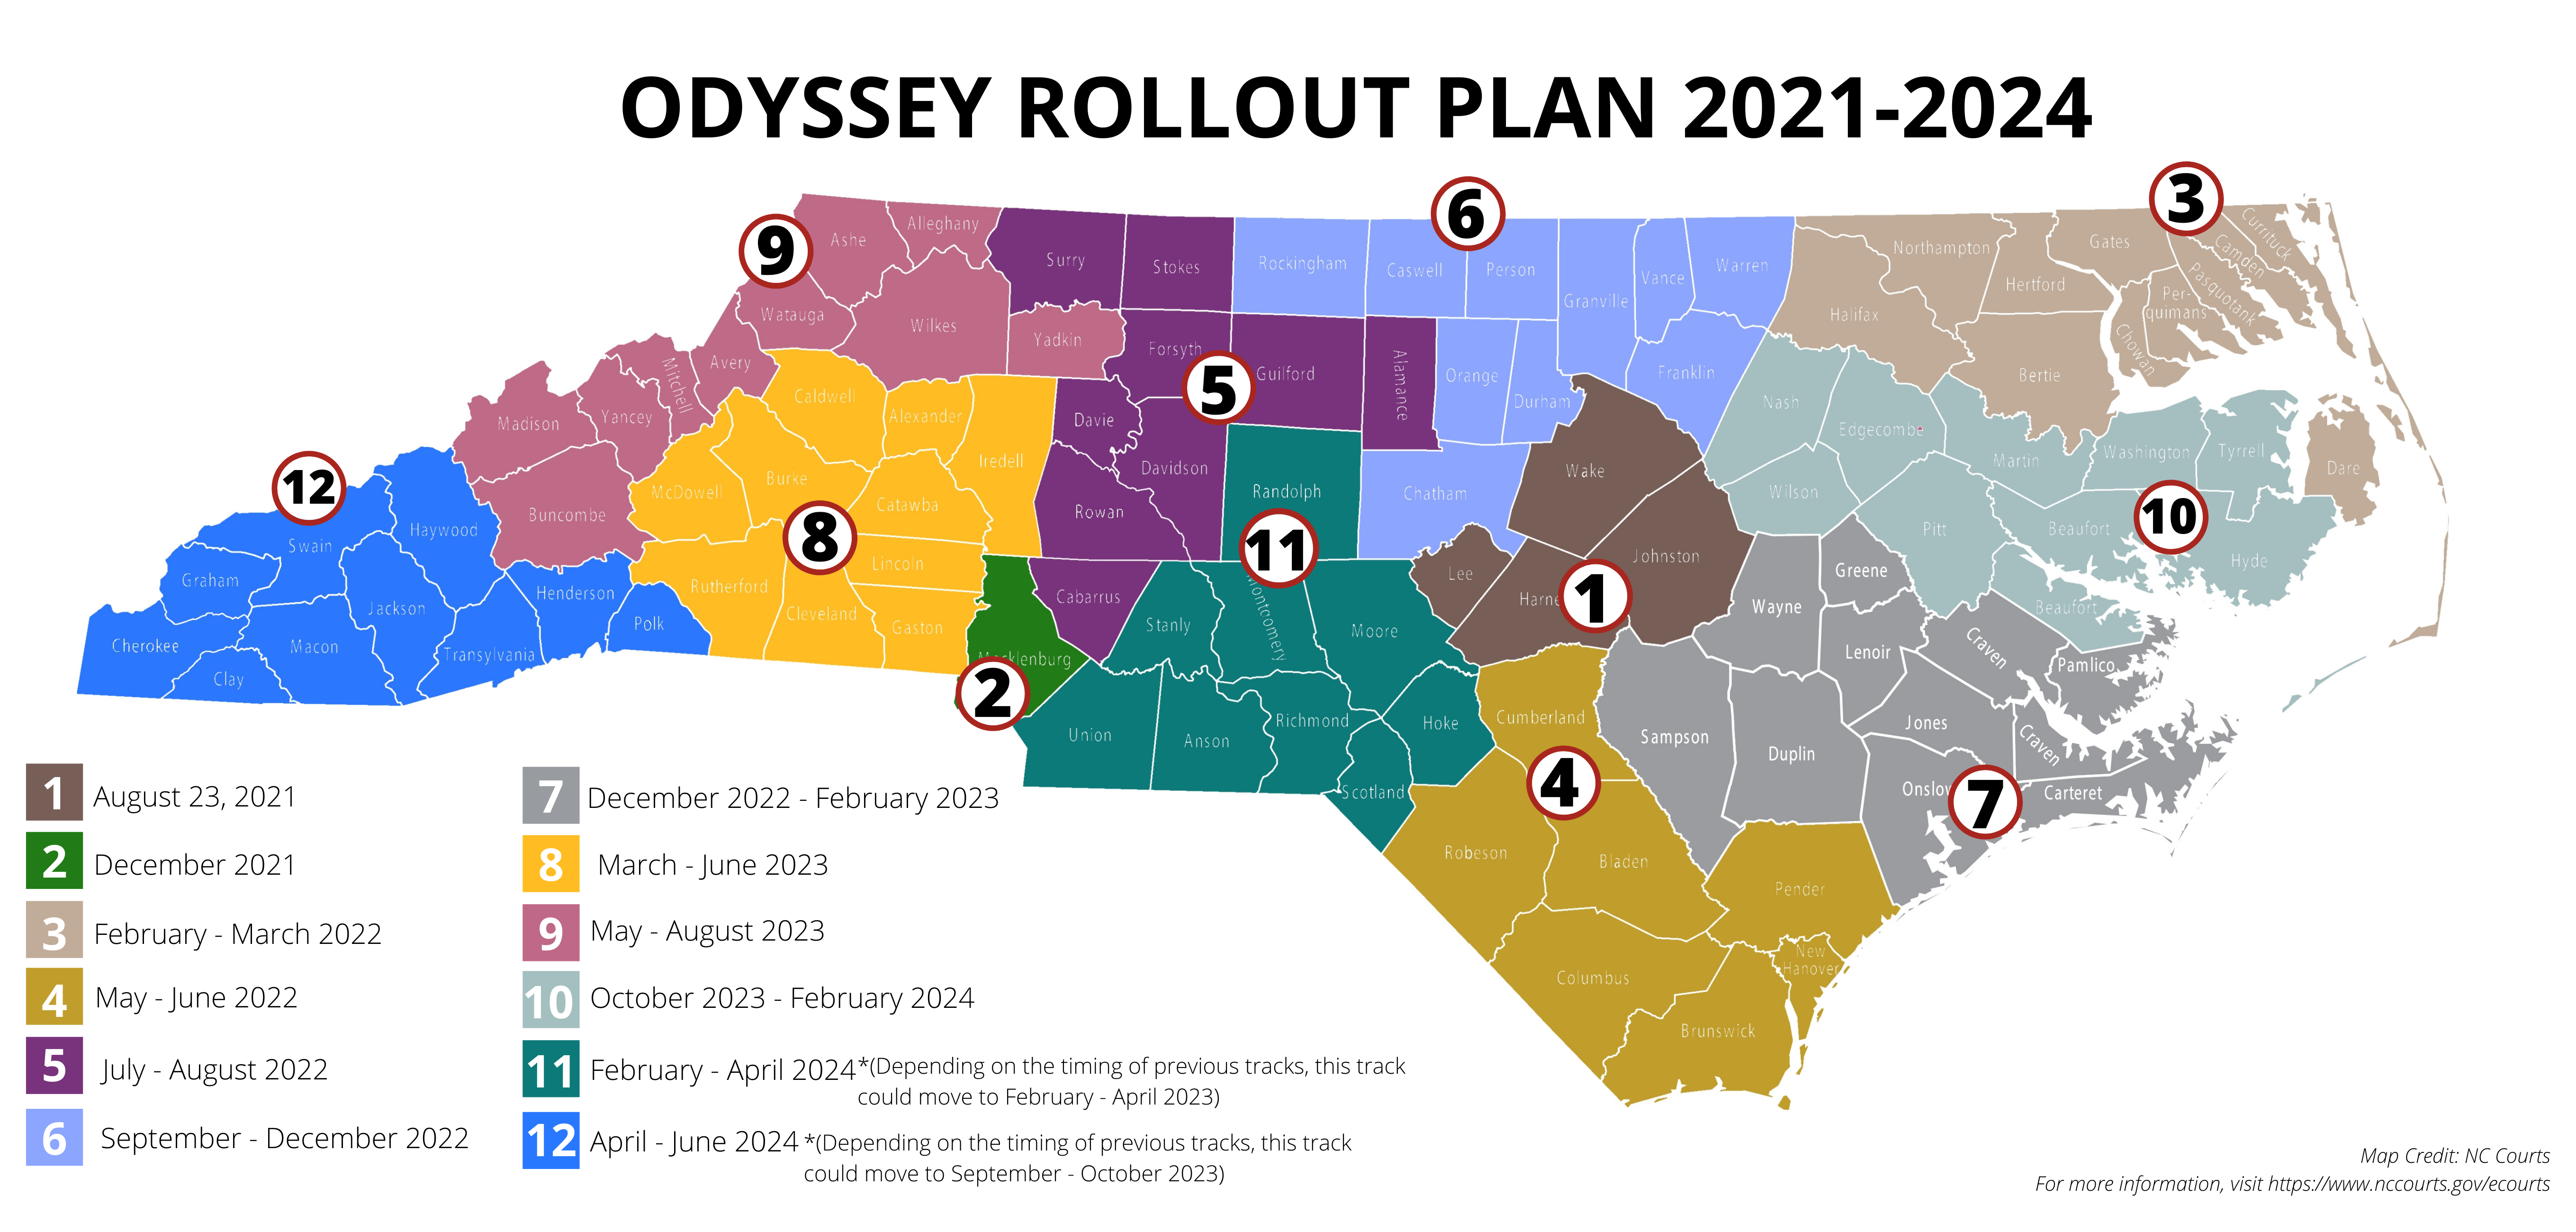 Odessy Rollout Plan Map